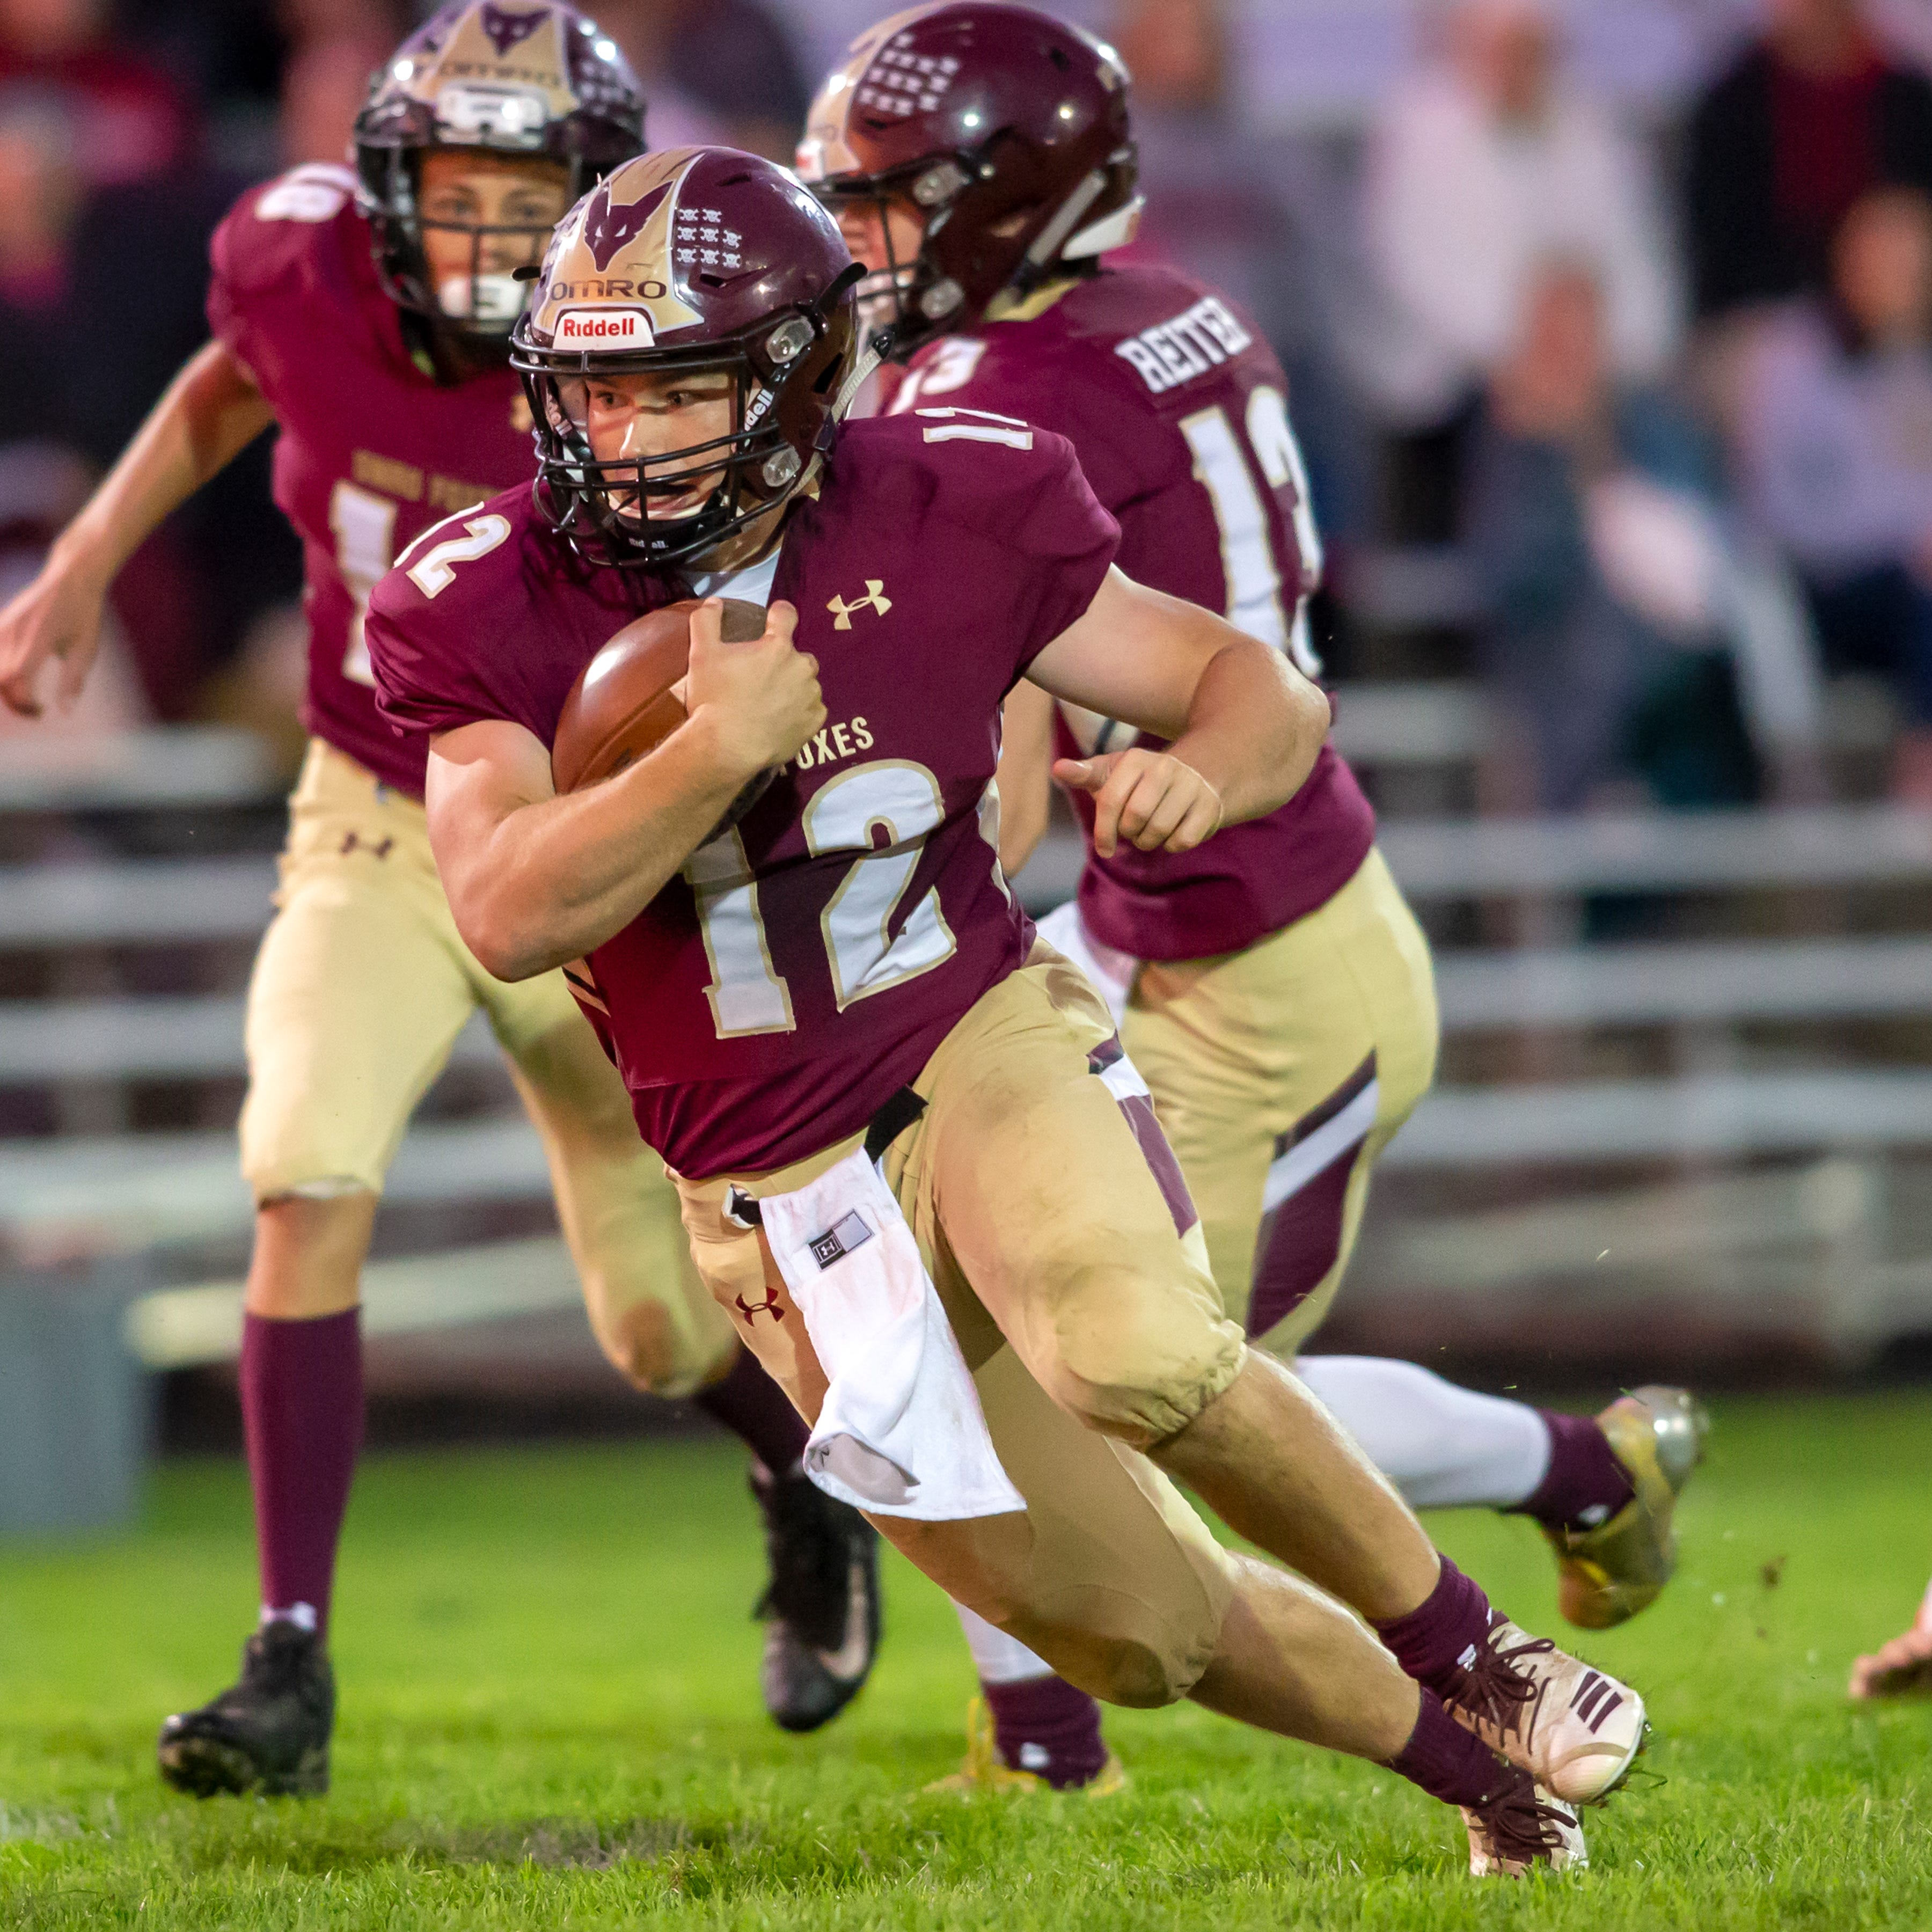 High school football: Friday matchup will determine last undefeated Flyway Conference team